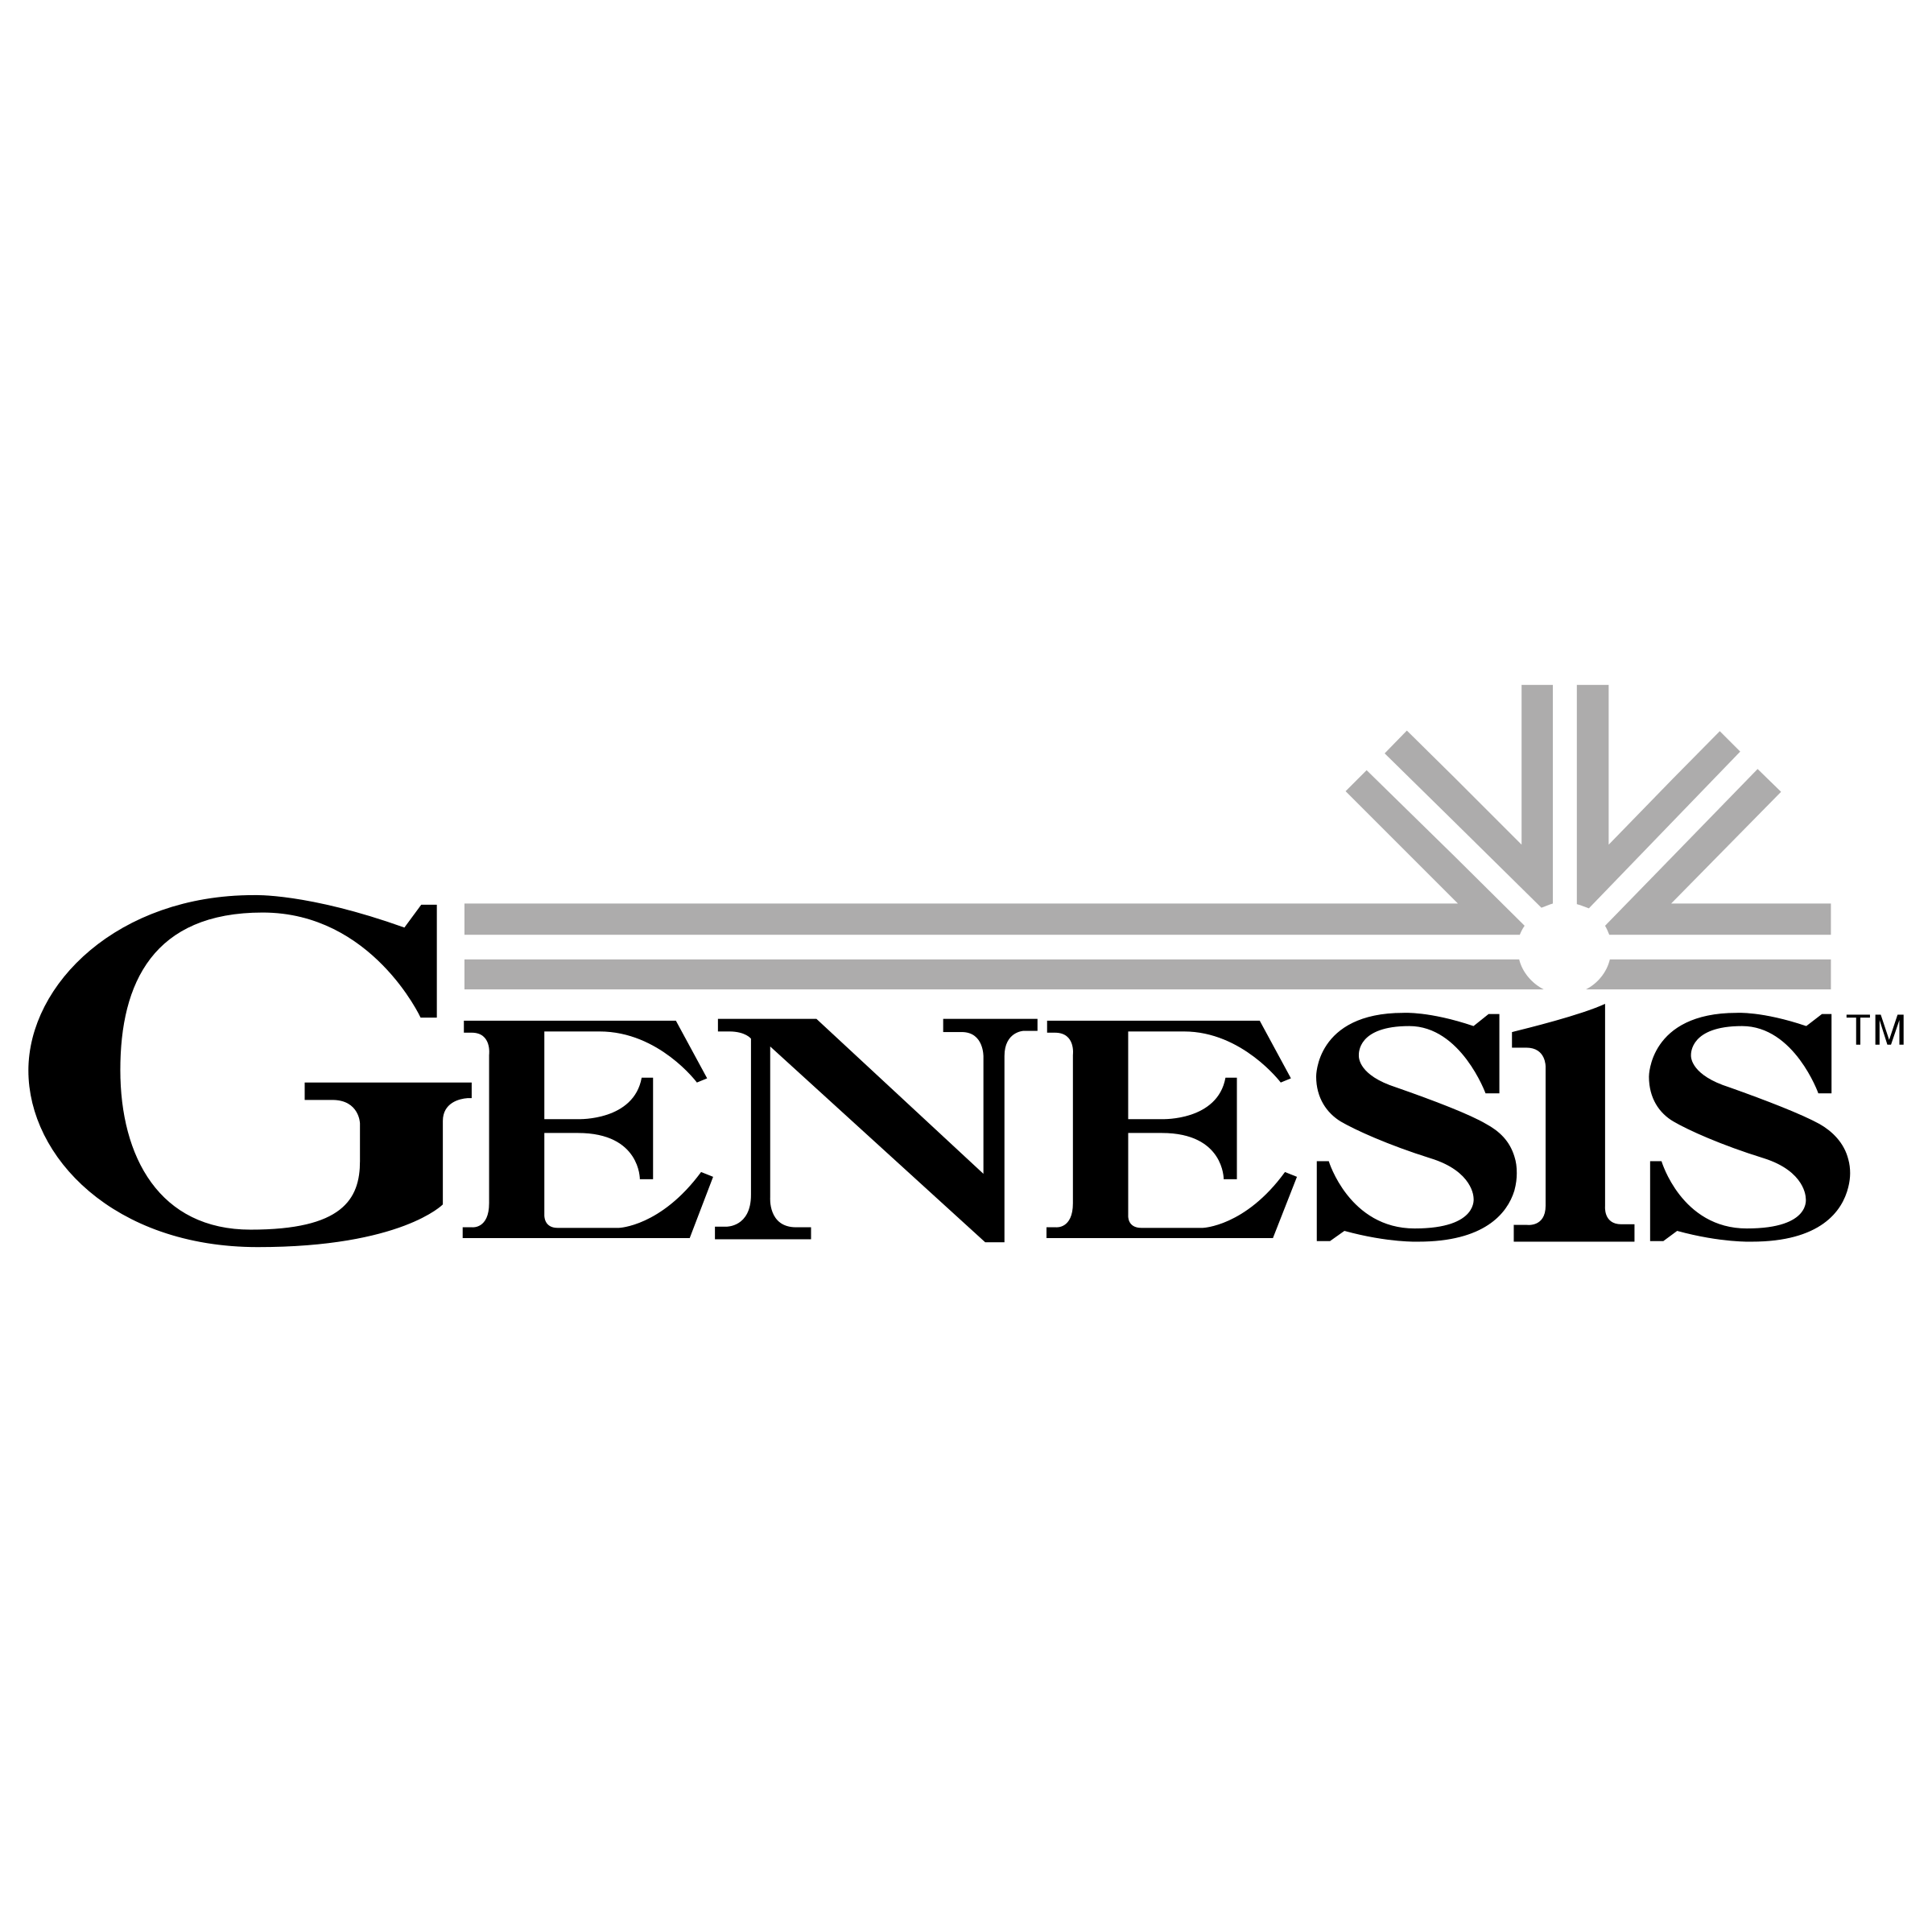 Genesis Logo - Genesis Logo PNG Transparent & SVG Vector - Freebie Supply